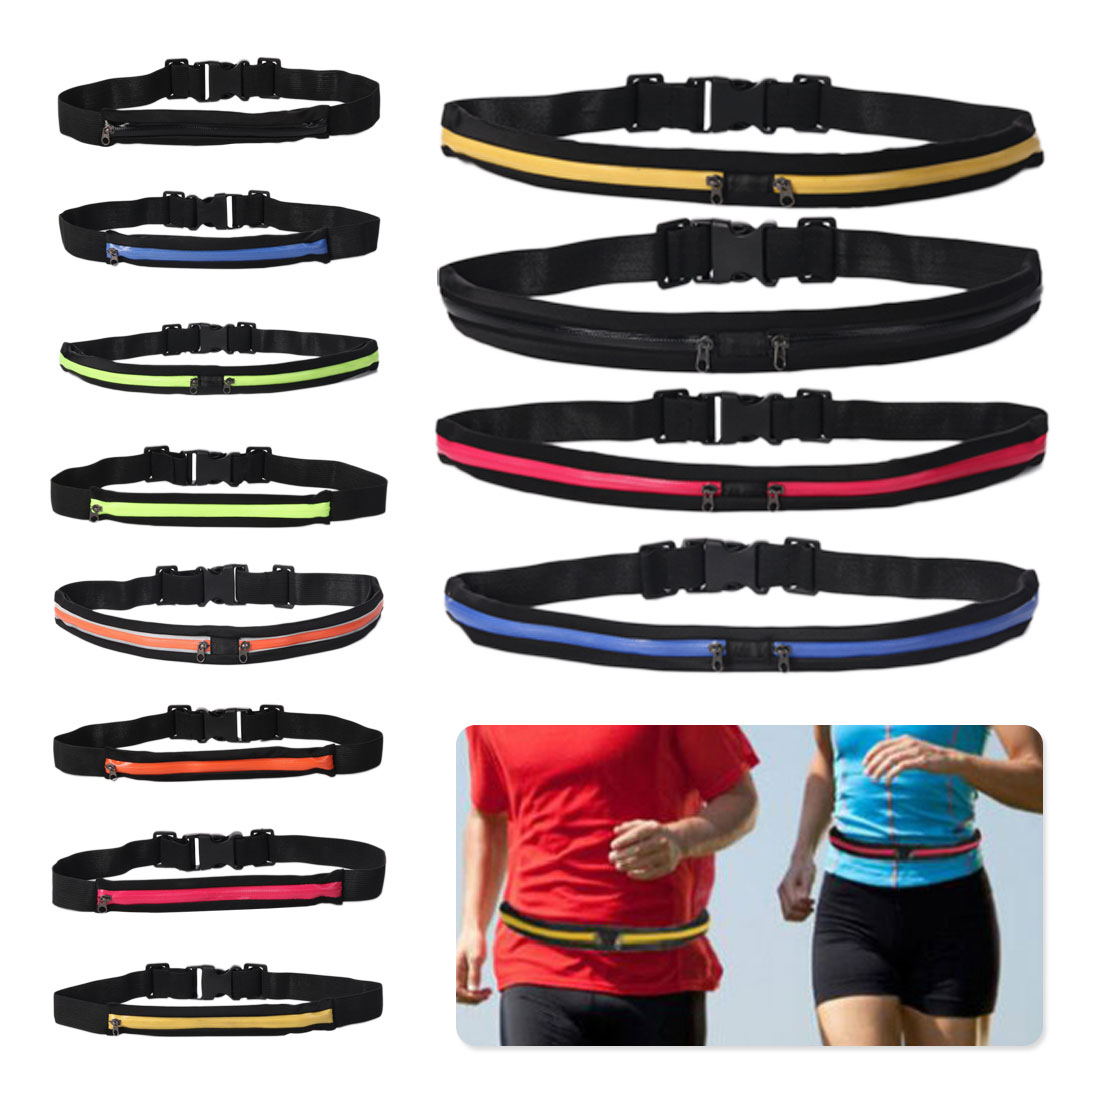 Sports Bag Running Sports Pockets Invisible Personal Phone Single Bag Double Bag Activities To Send Gifts Phone Belt Bag